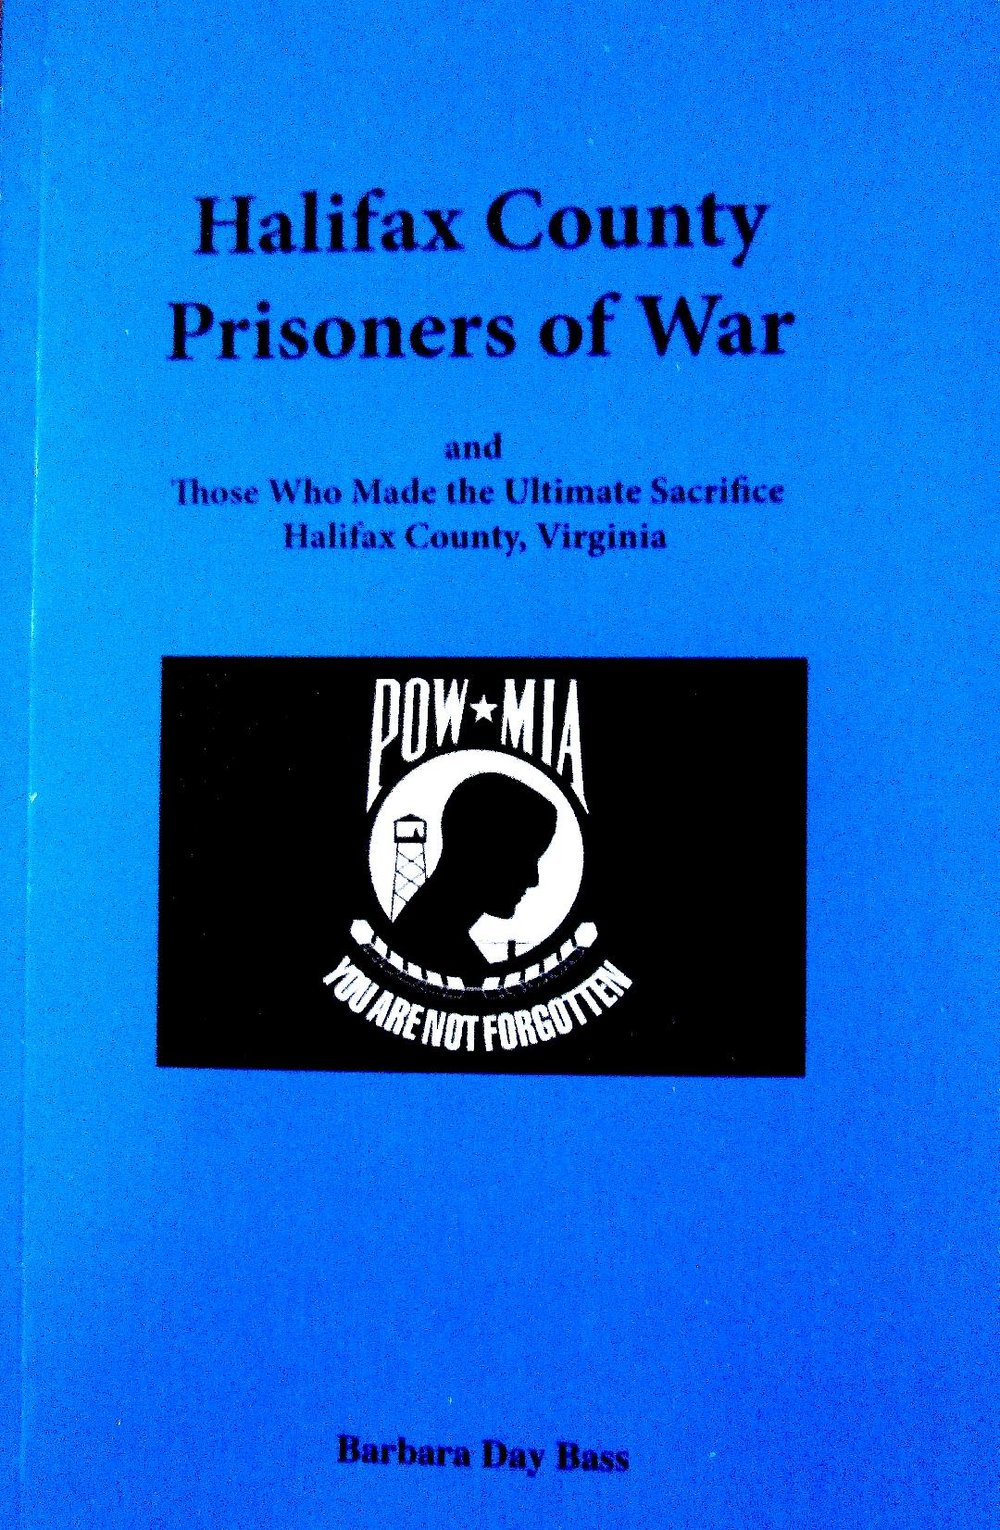 POW book cover.jpg